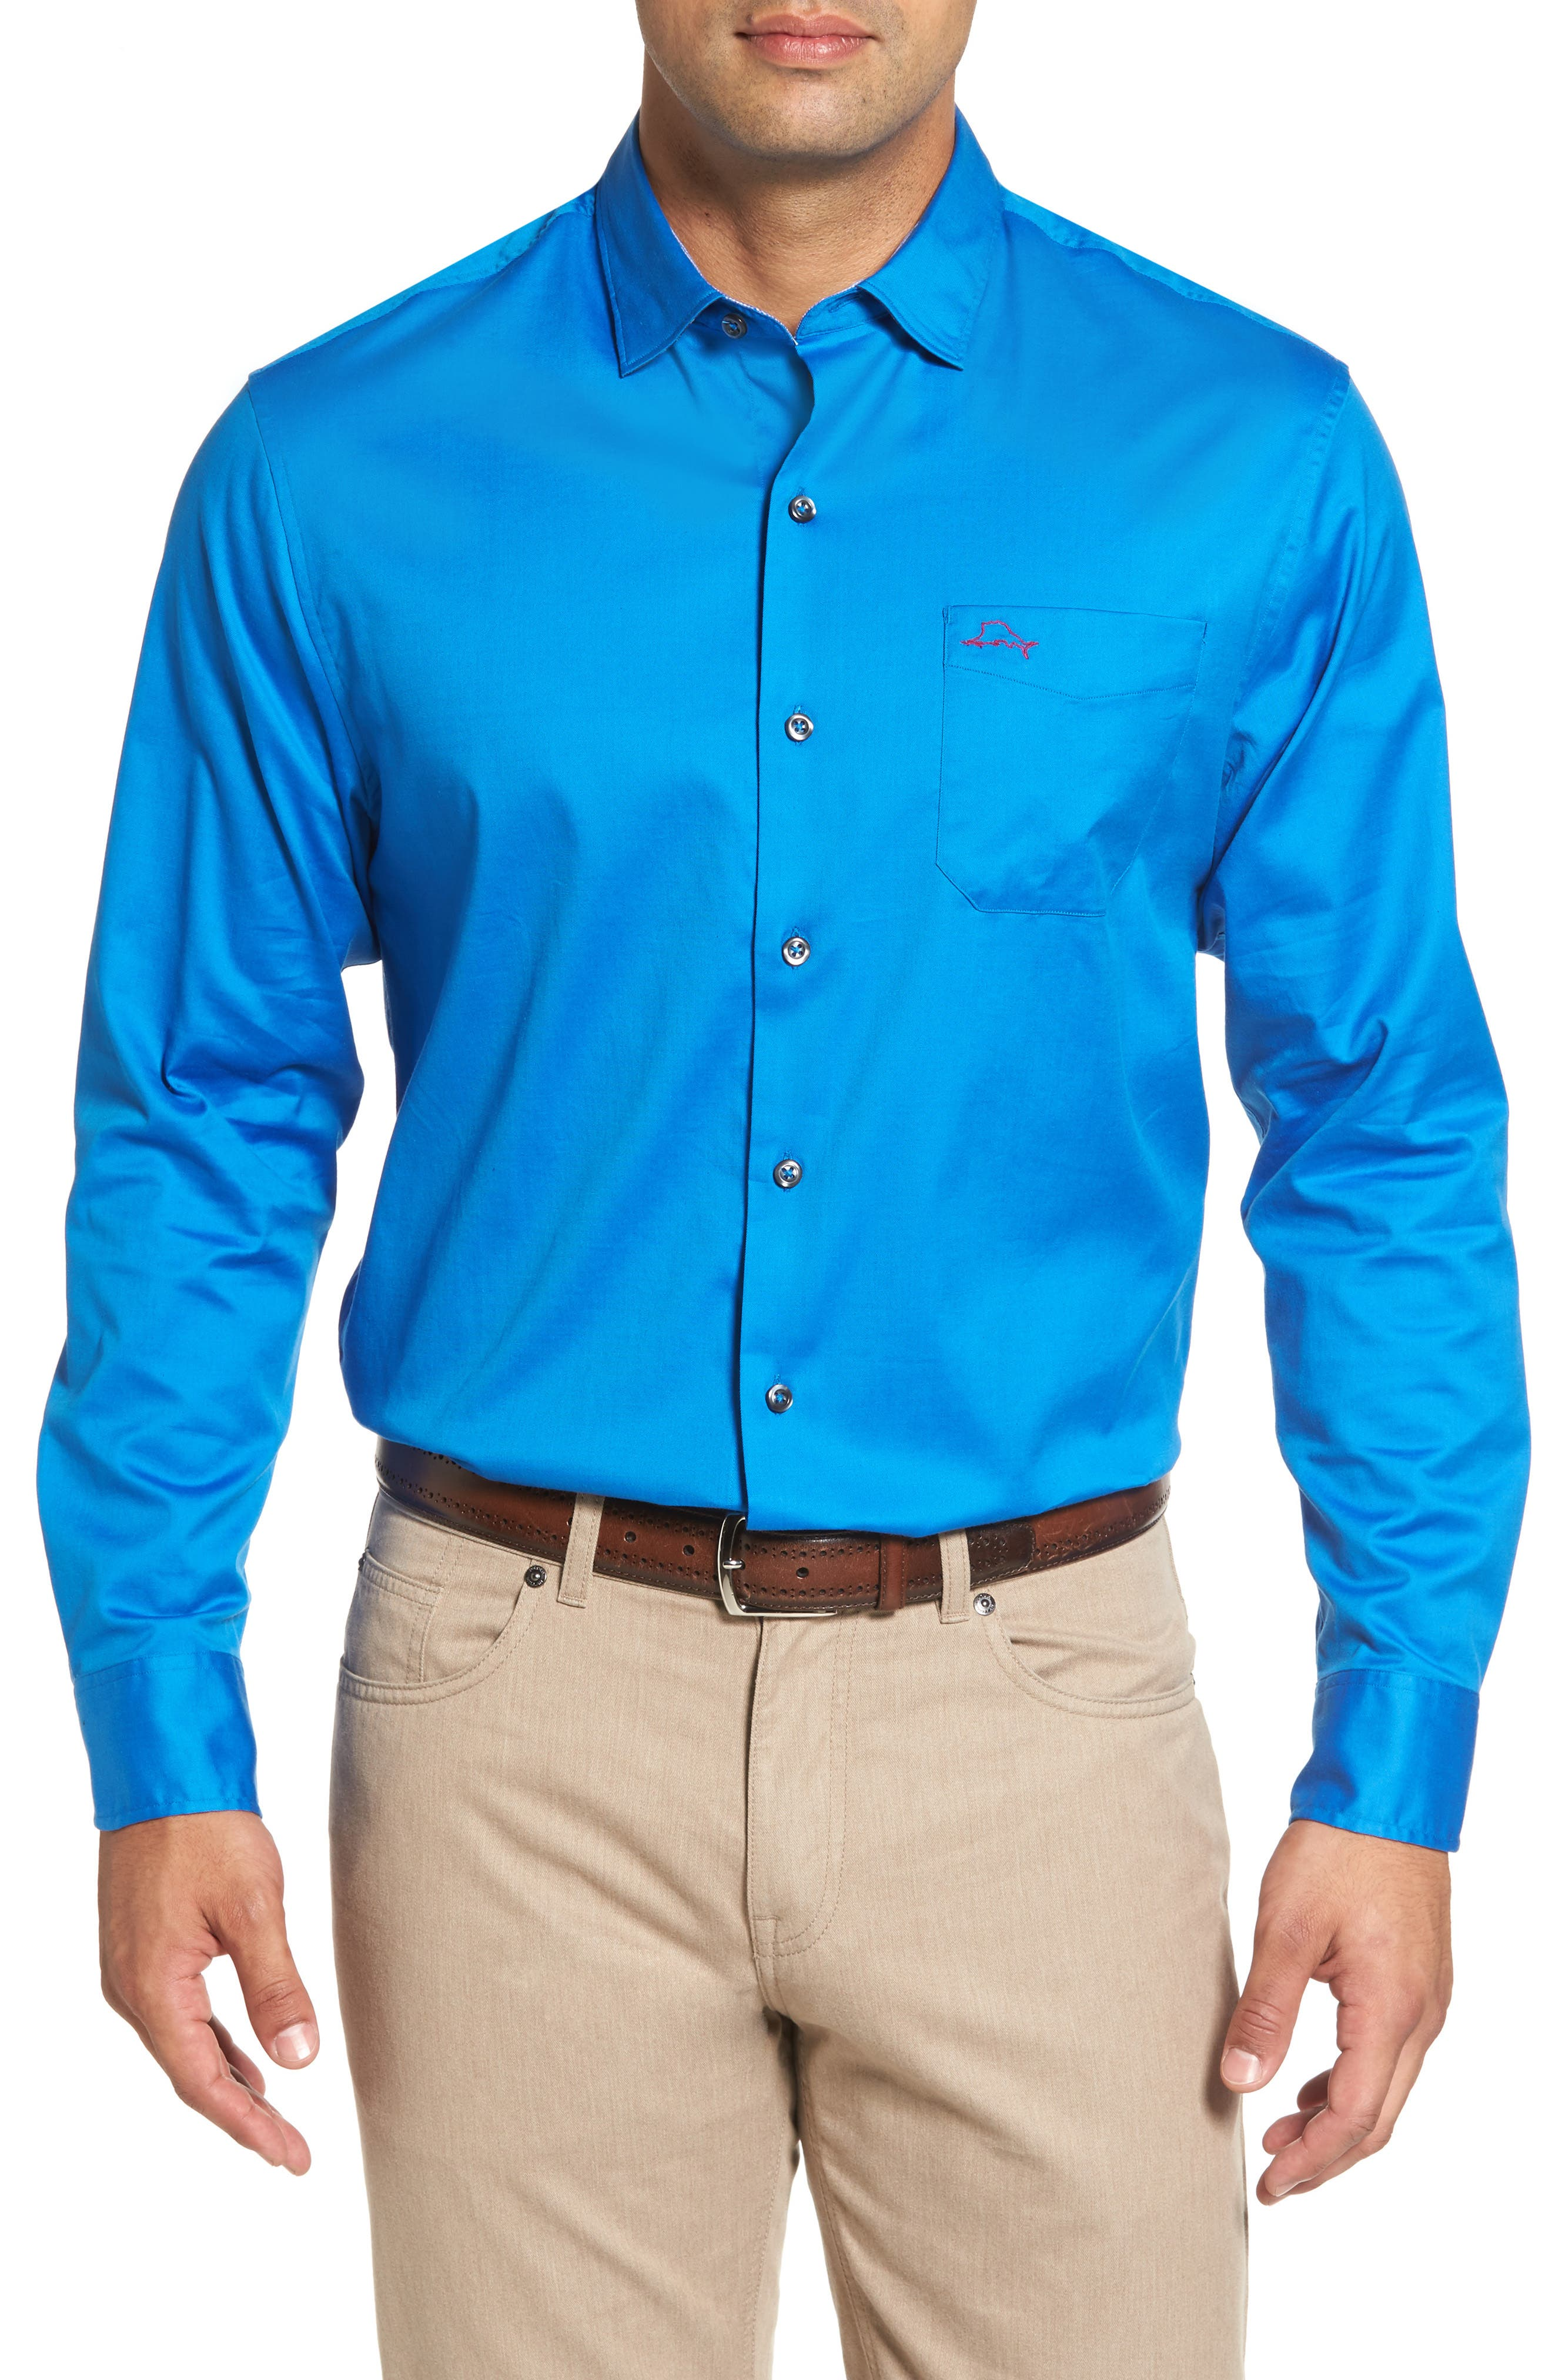 Alternate Image 1 Selected - Tommy Bahama Oasis Twill Sport Shirt